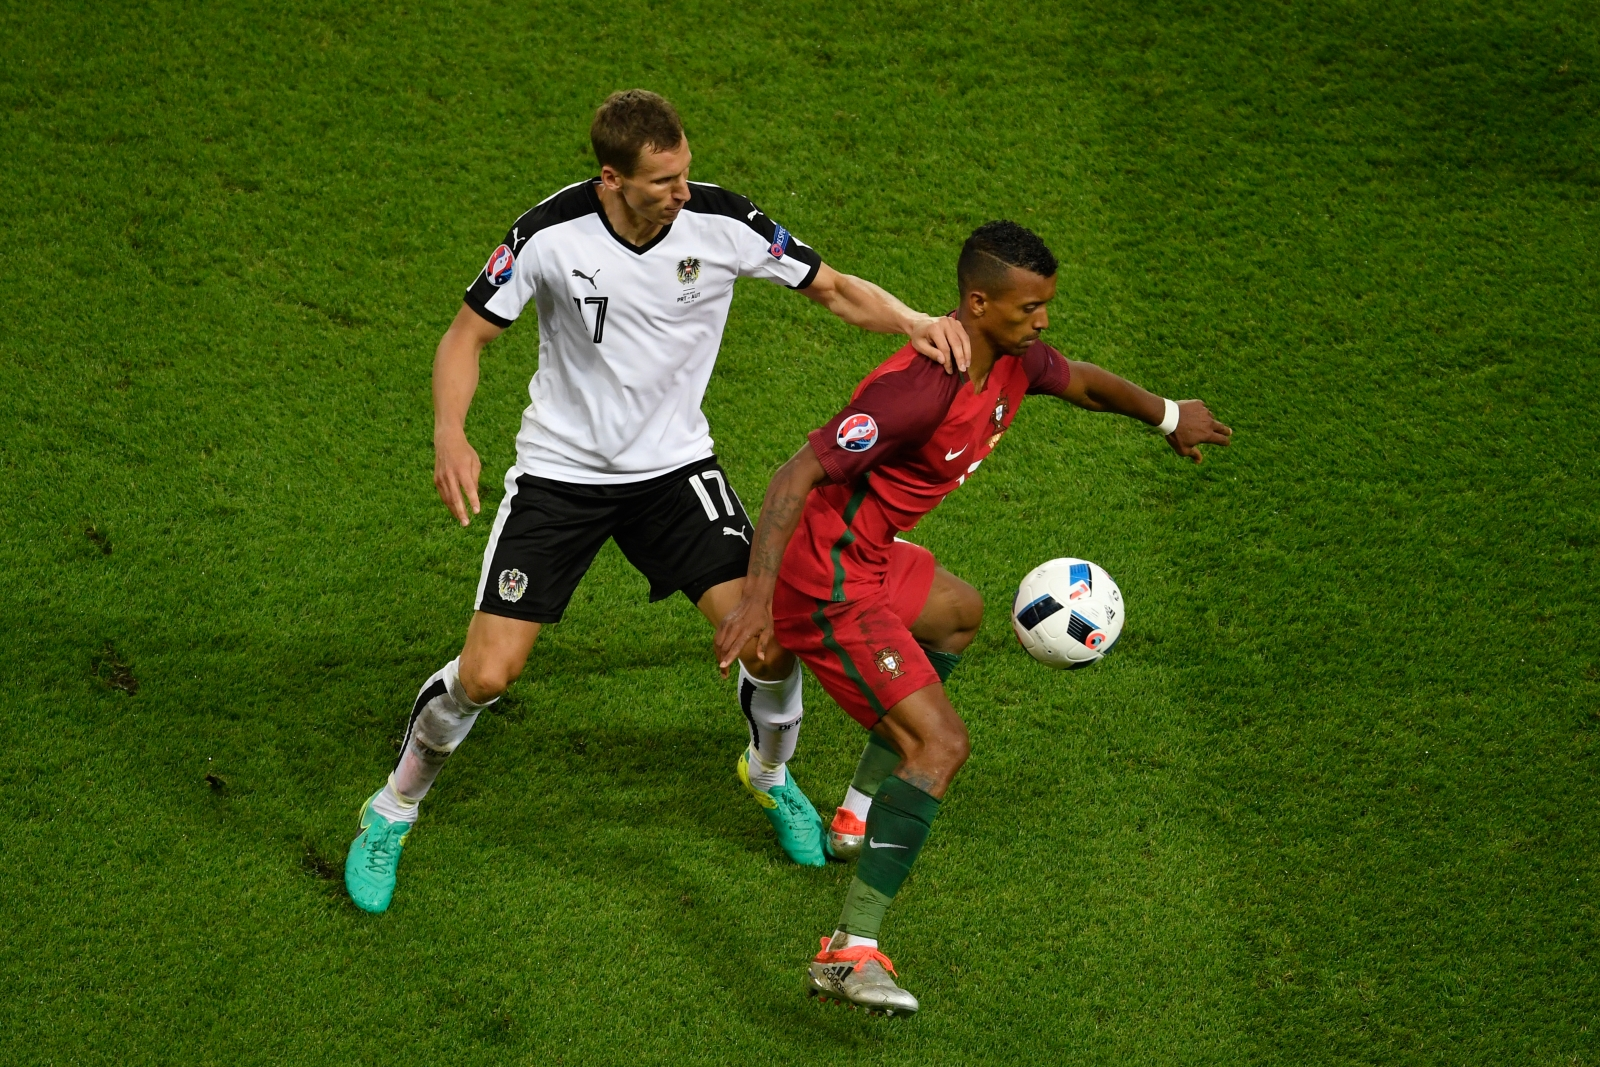 Nani wins the ball